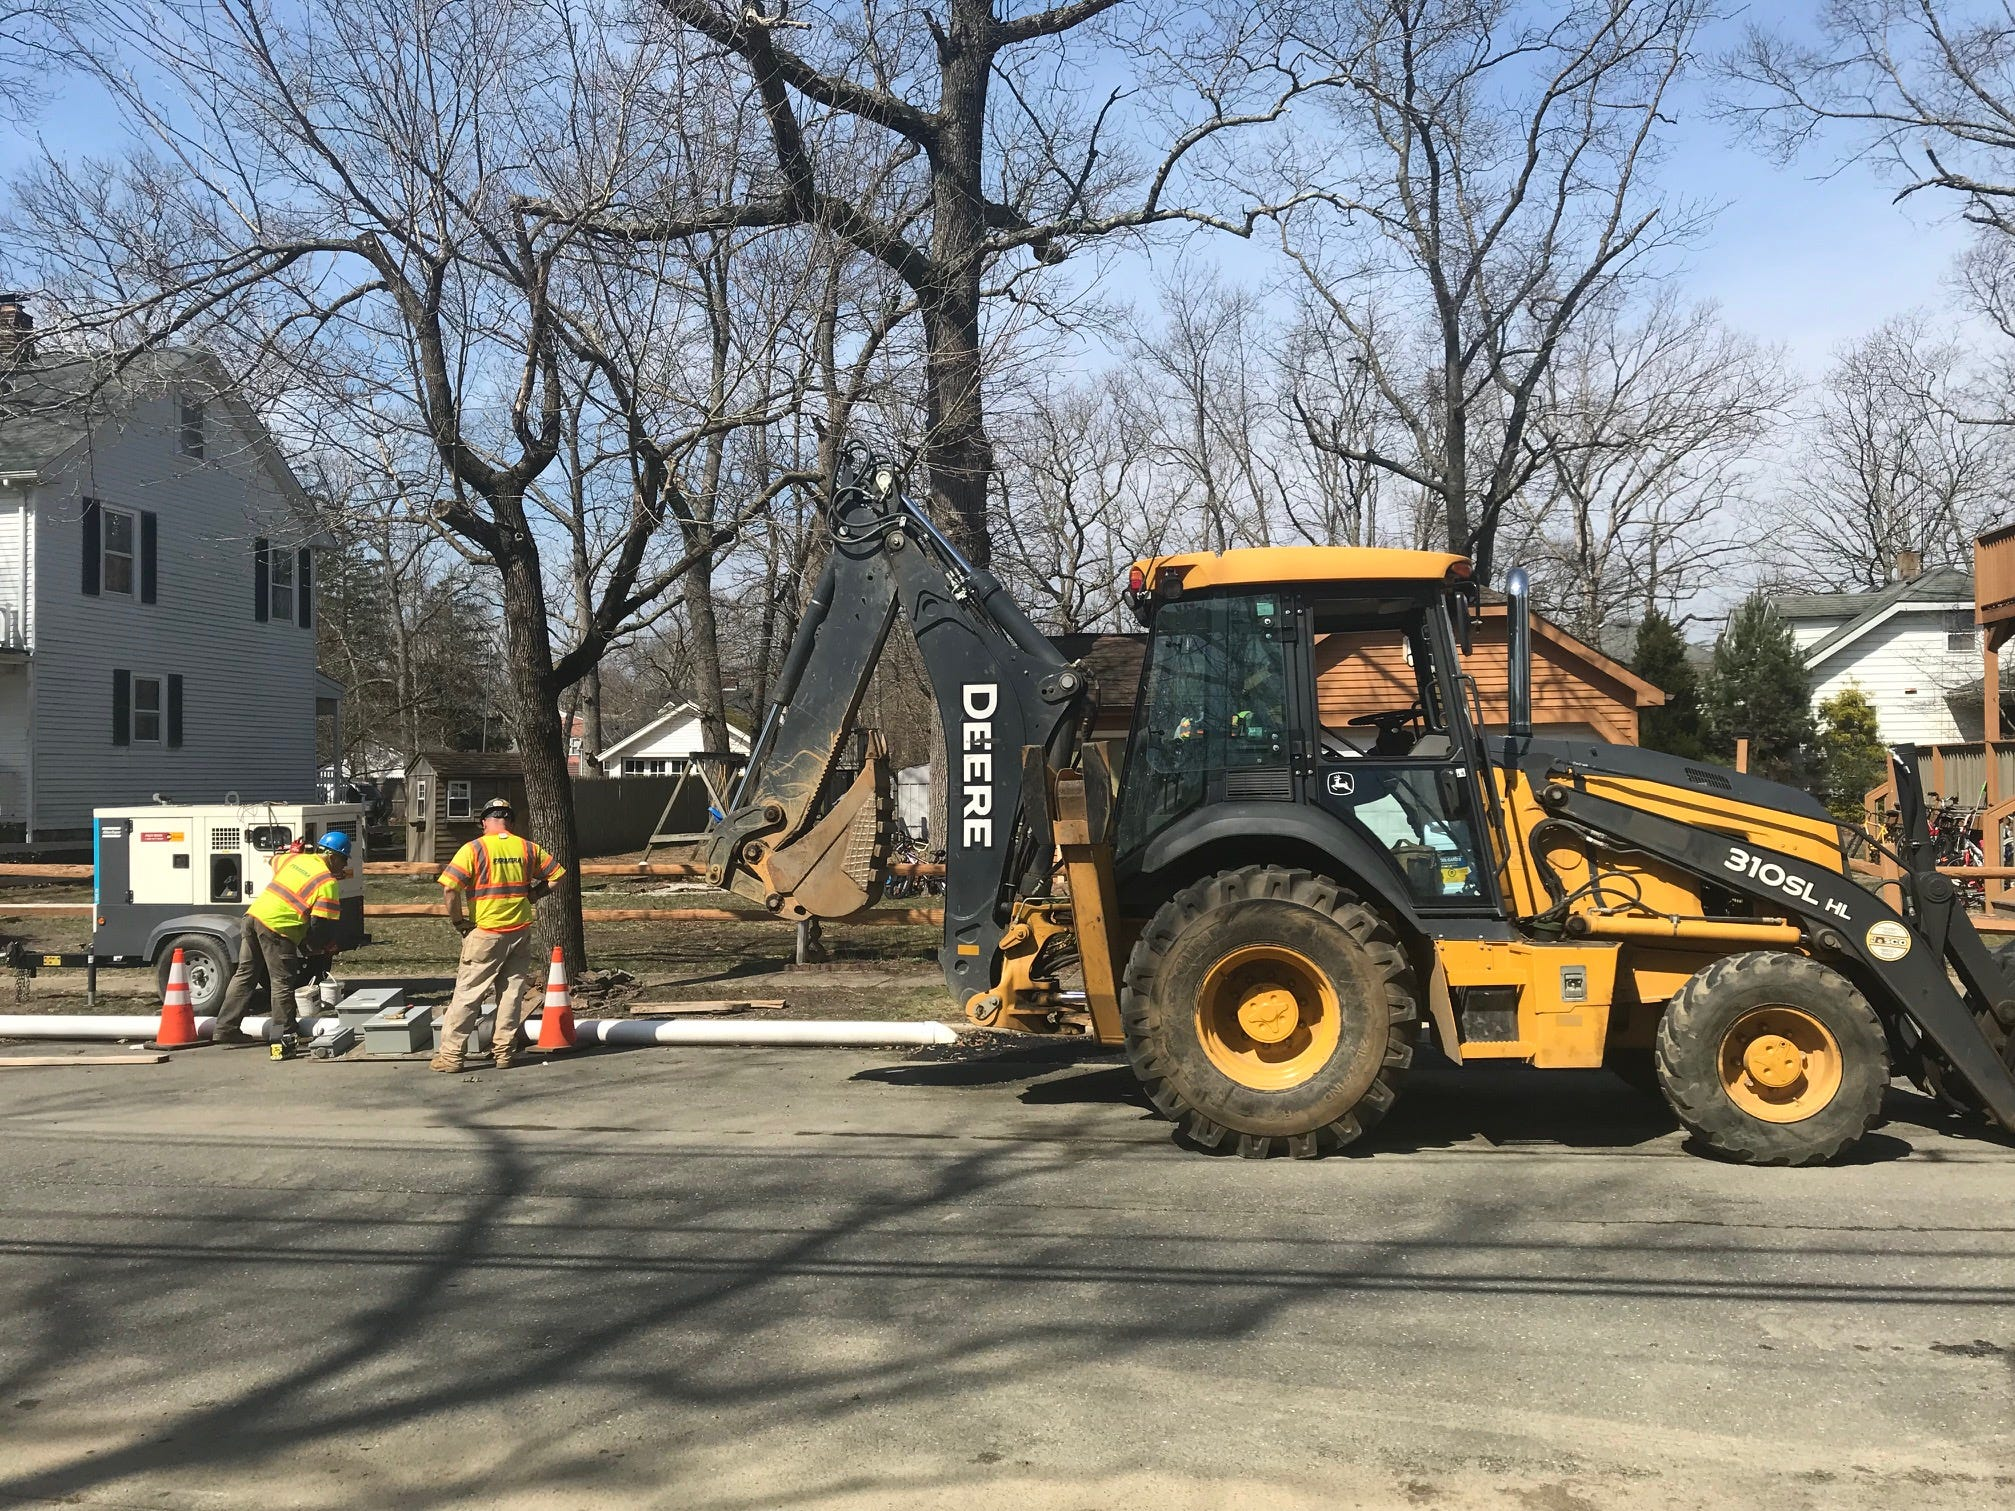 Crews working on a drainage improvement project on Kimball Road in Lakewood on Monday, April 8, 2019.